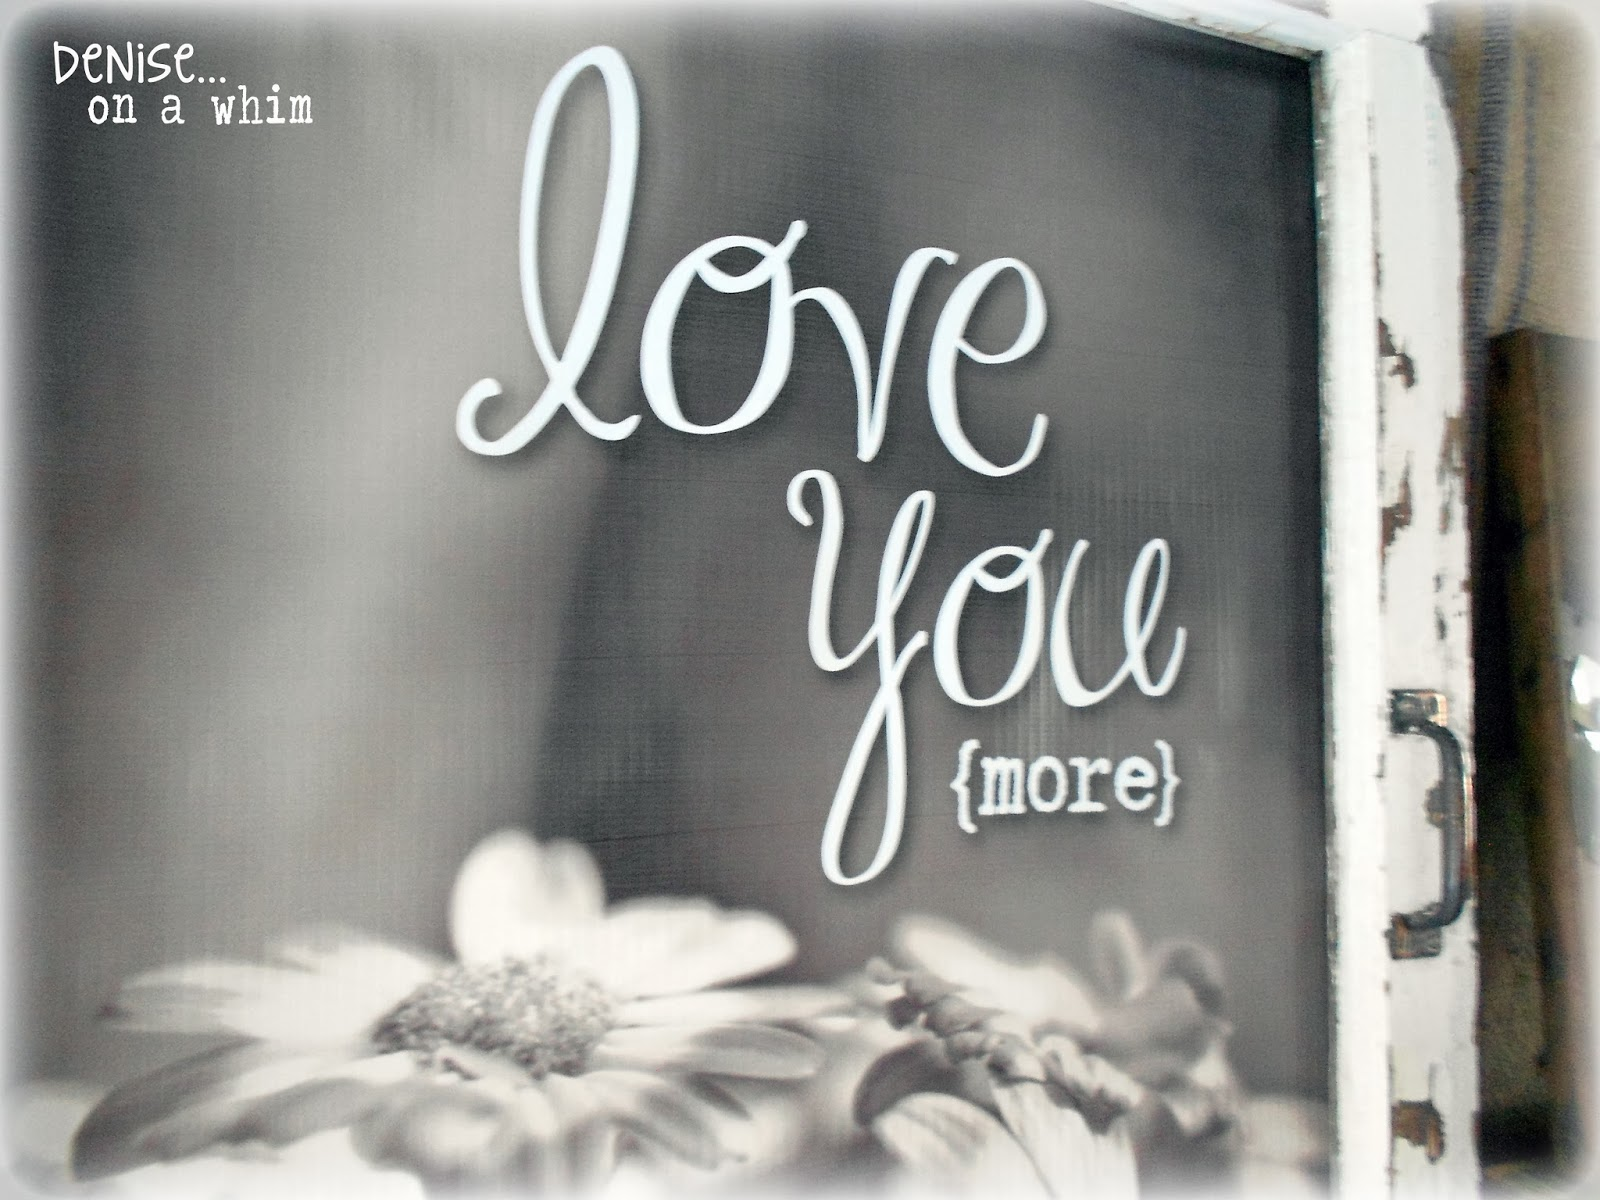 Love You More Chippy Window Wall Art via http://deniseonawhim.blogspot.com